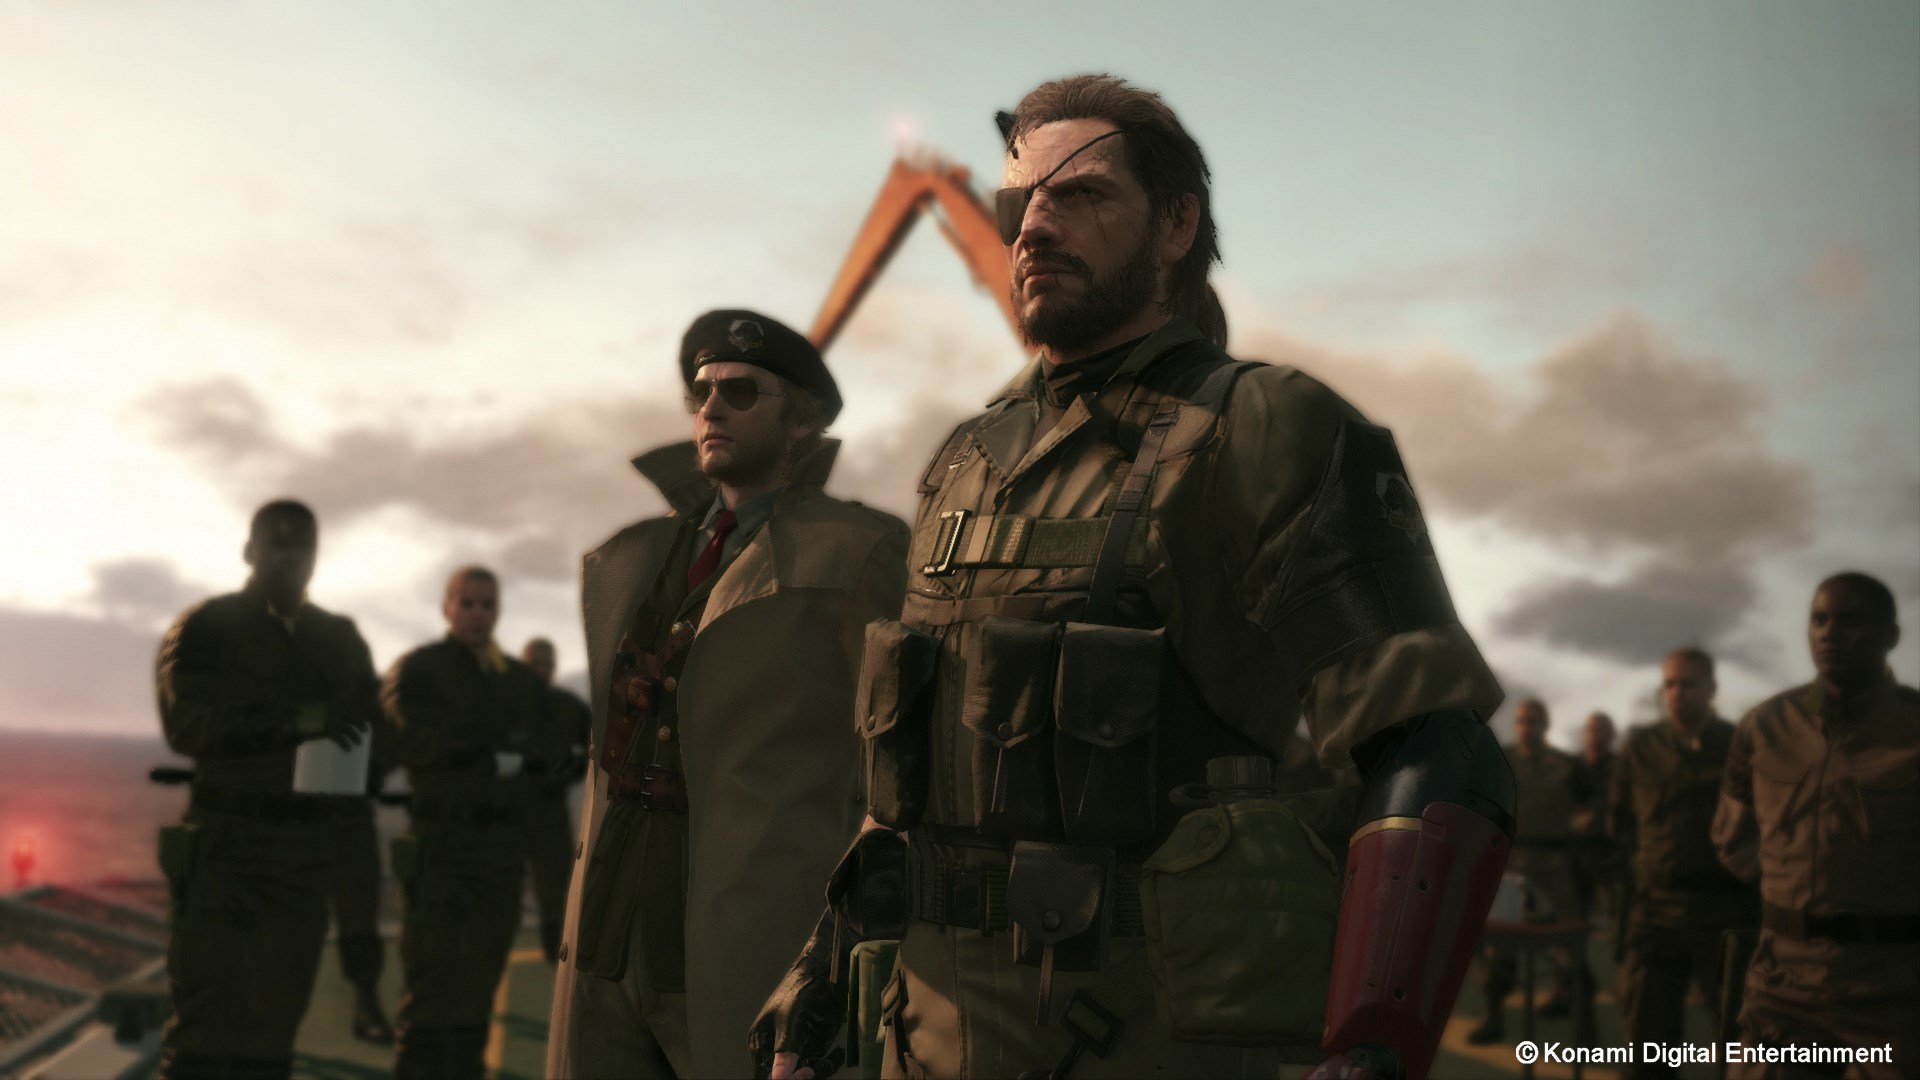 1920x1080-free-download-pictures-of-metal-gear-solid-v-the-phantom-pain-wallpaper-wp360796-1